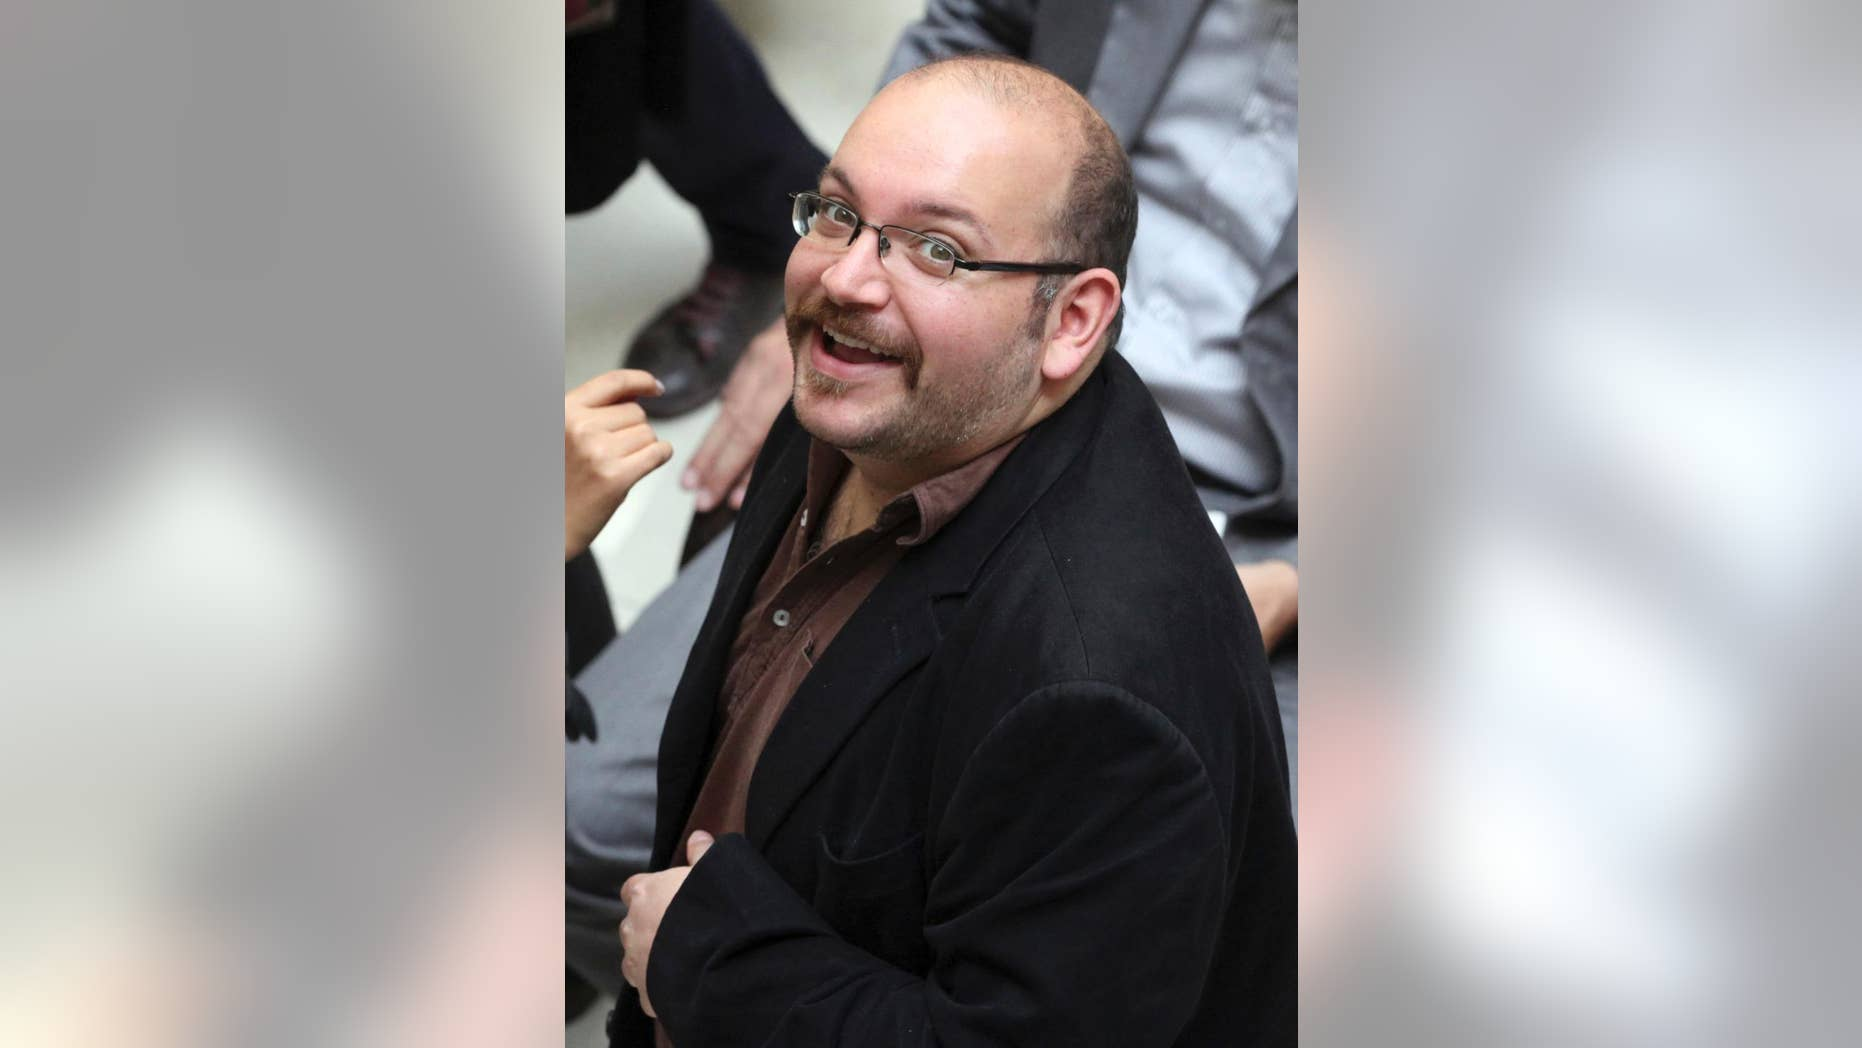 April 11, 2013: In this file photo, Jason Rezaian, an Iranian-American correspondent for the Washington Post, smiles as he attends a presidential campaign of President Hassan Rouhani in Tehran, Iran.